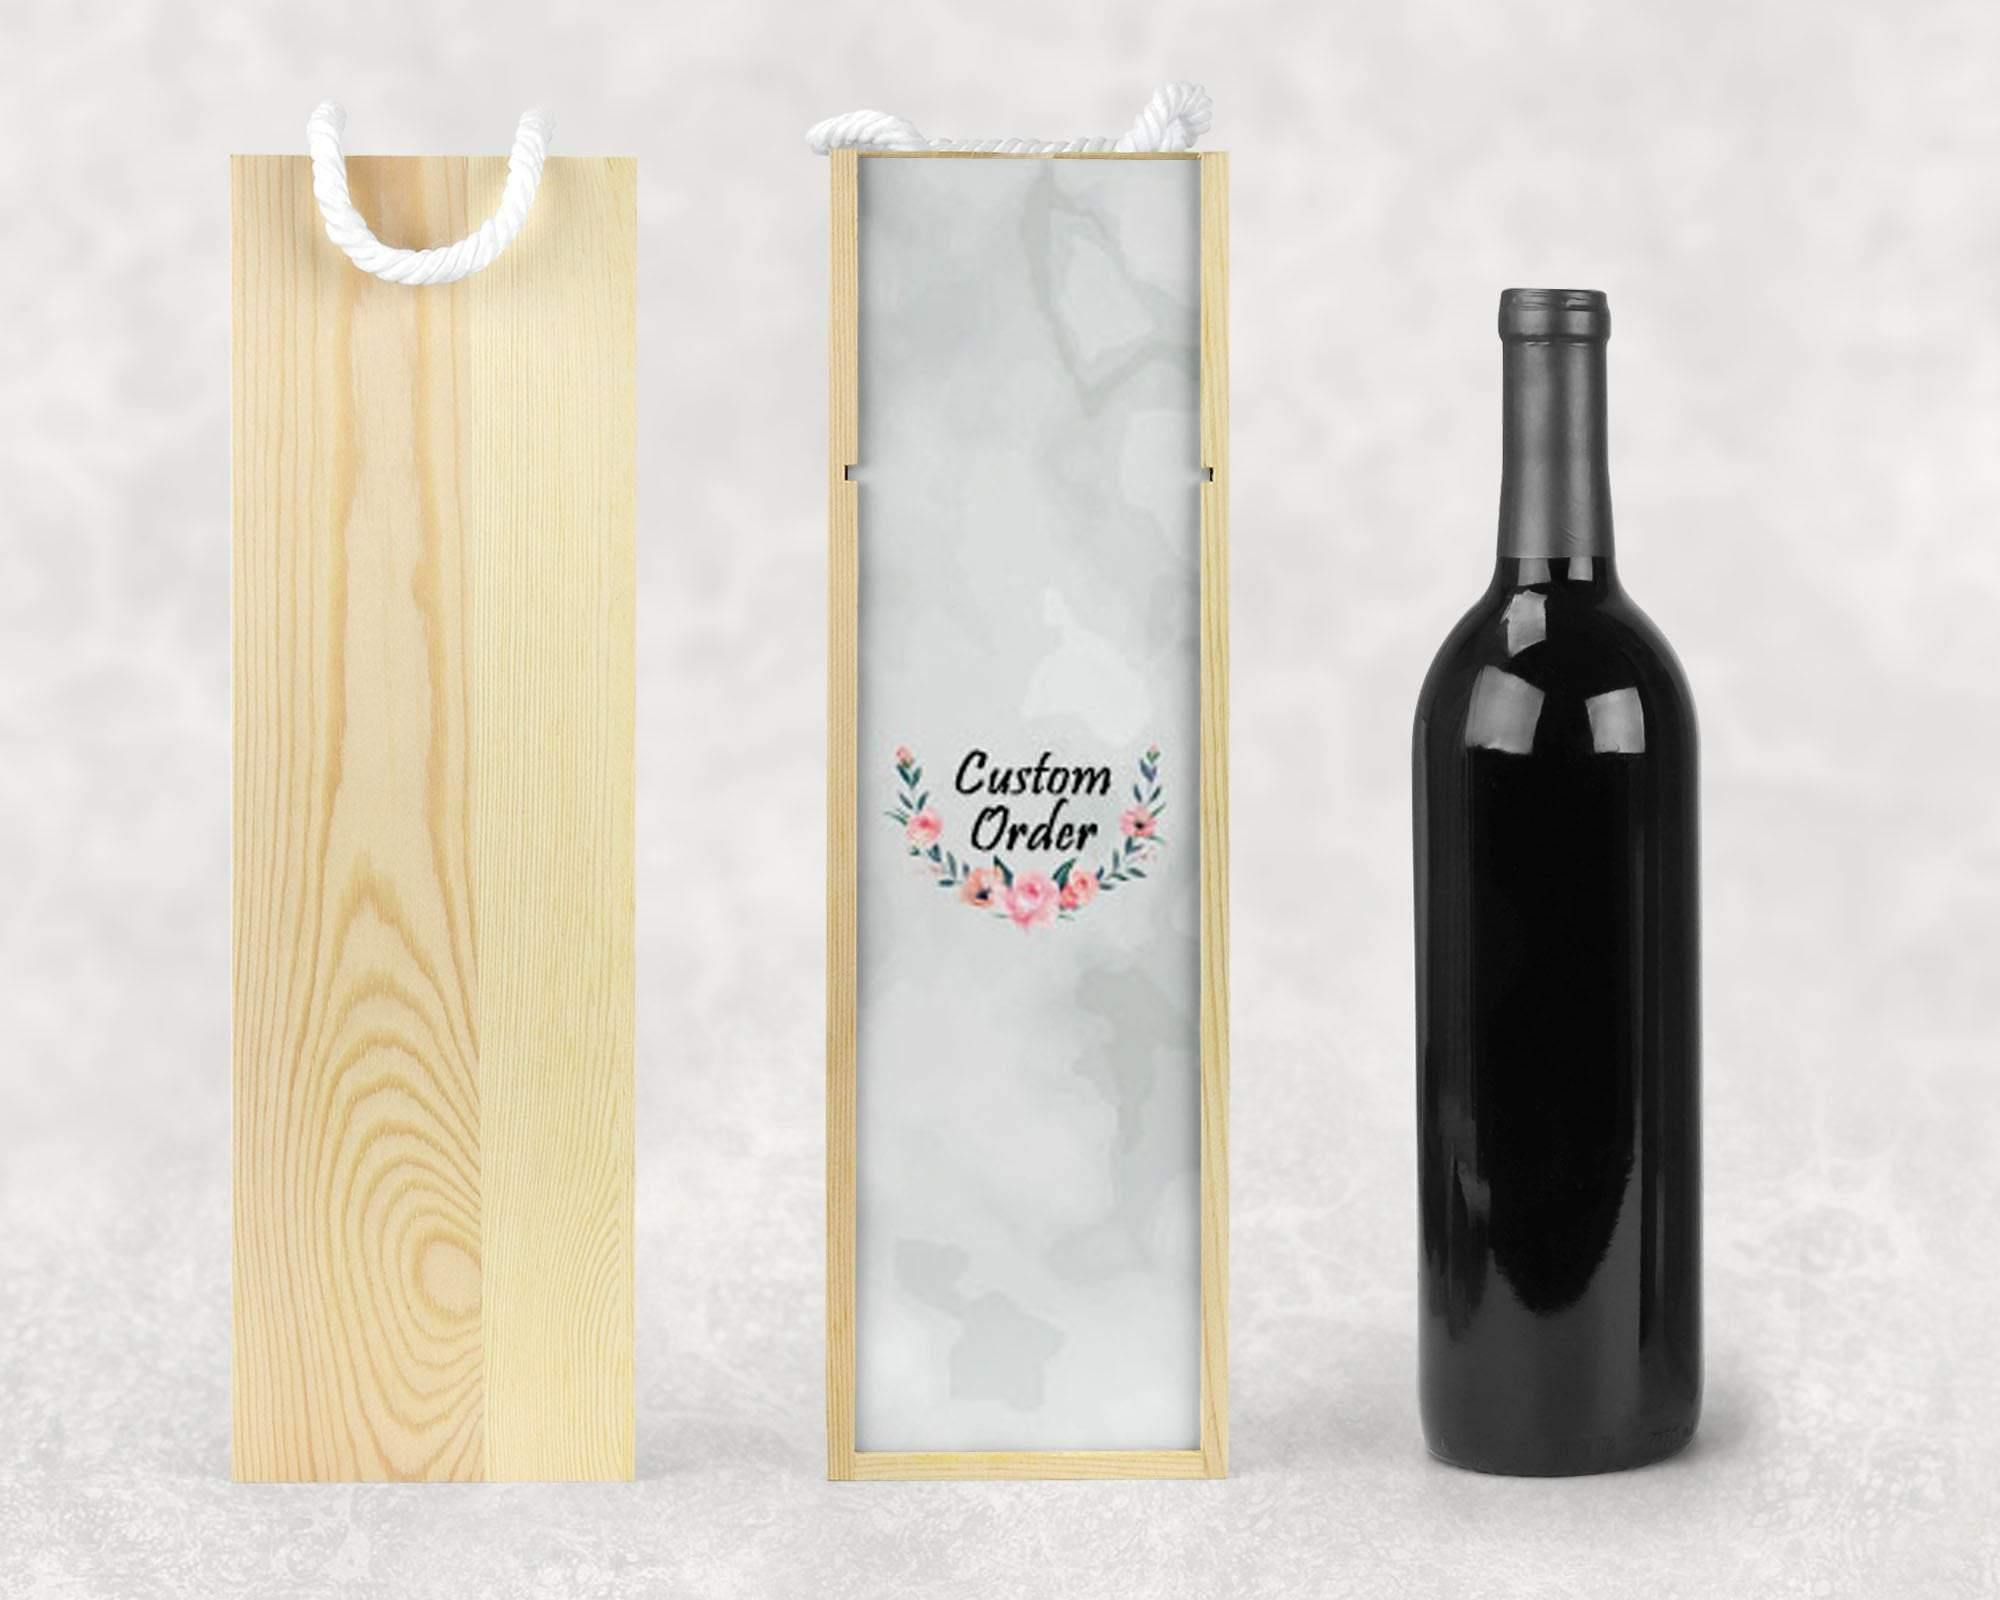 Wine & Beer Storage | Personalized Wine Box | Custom Wine Gifts | Wine Storage | Custom Order | This and That Solutions | Personalized Gifts | Custom Home Décor